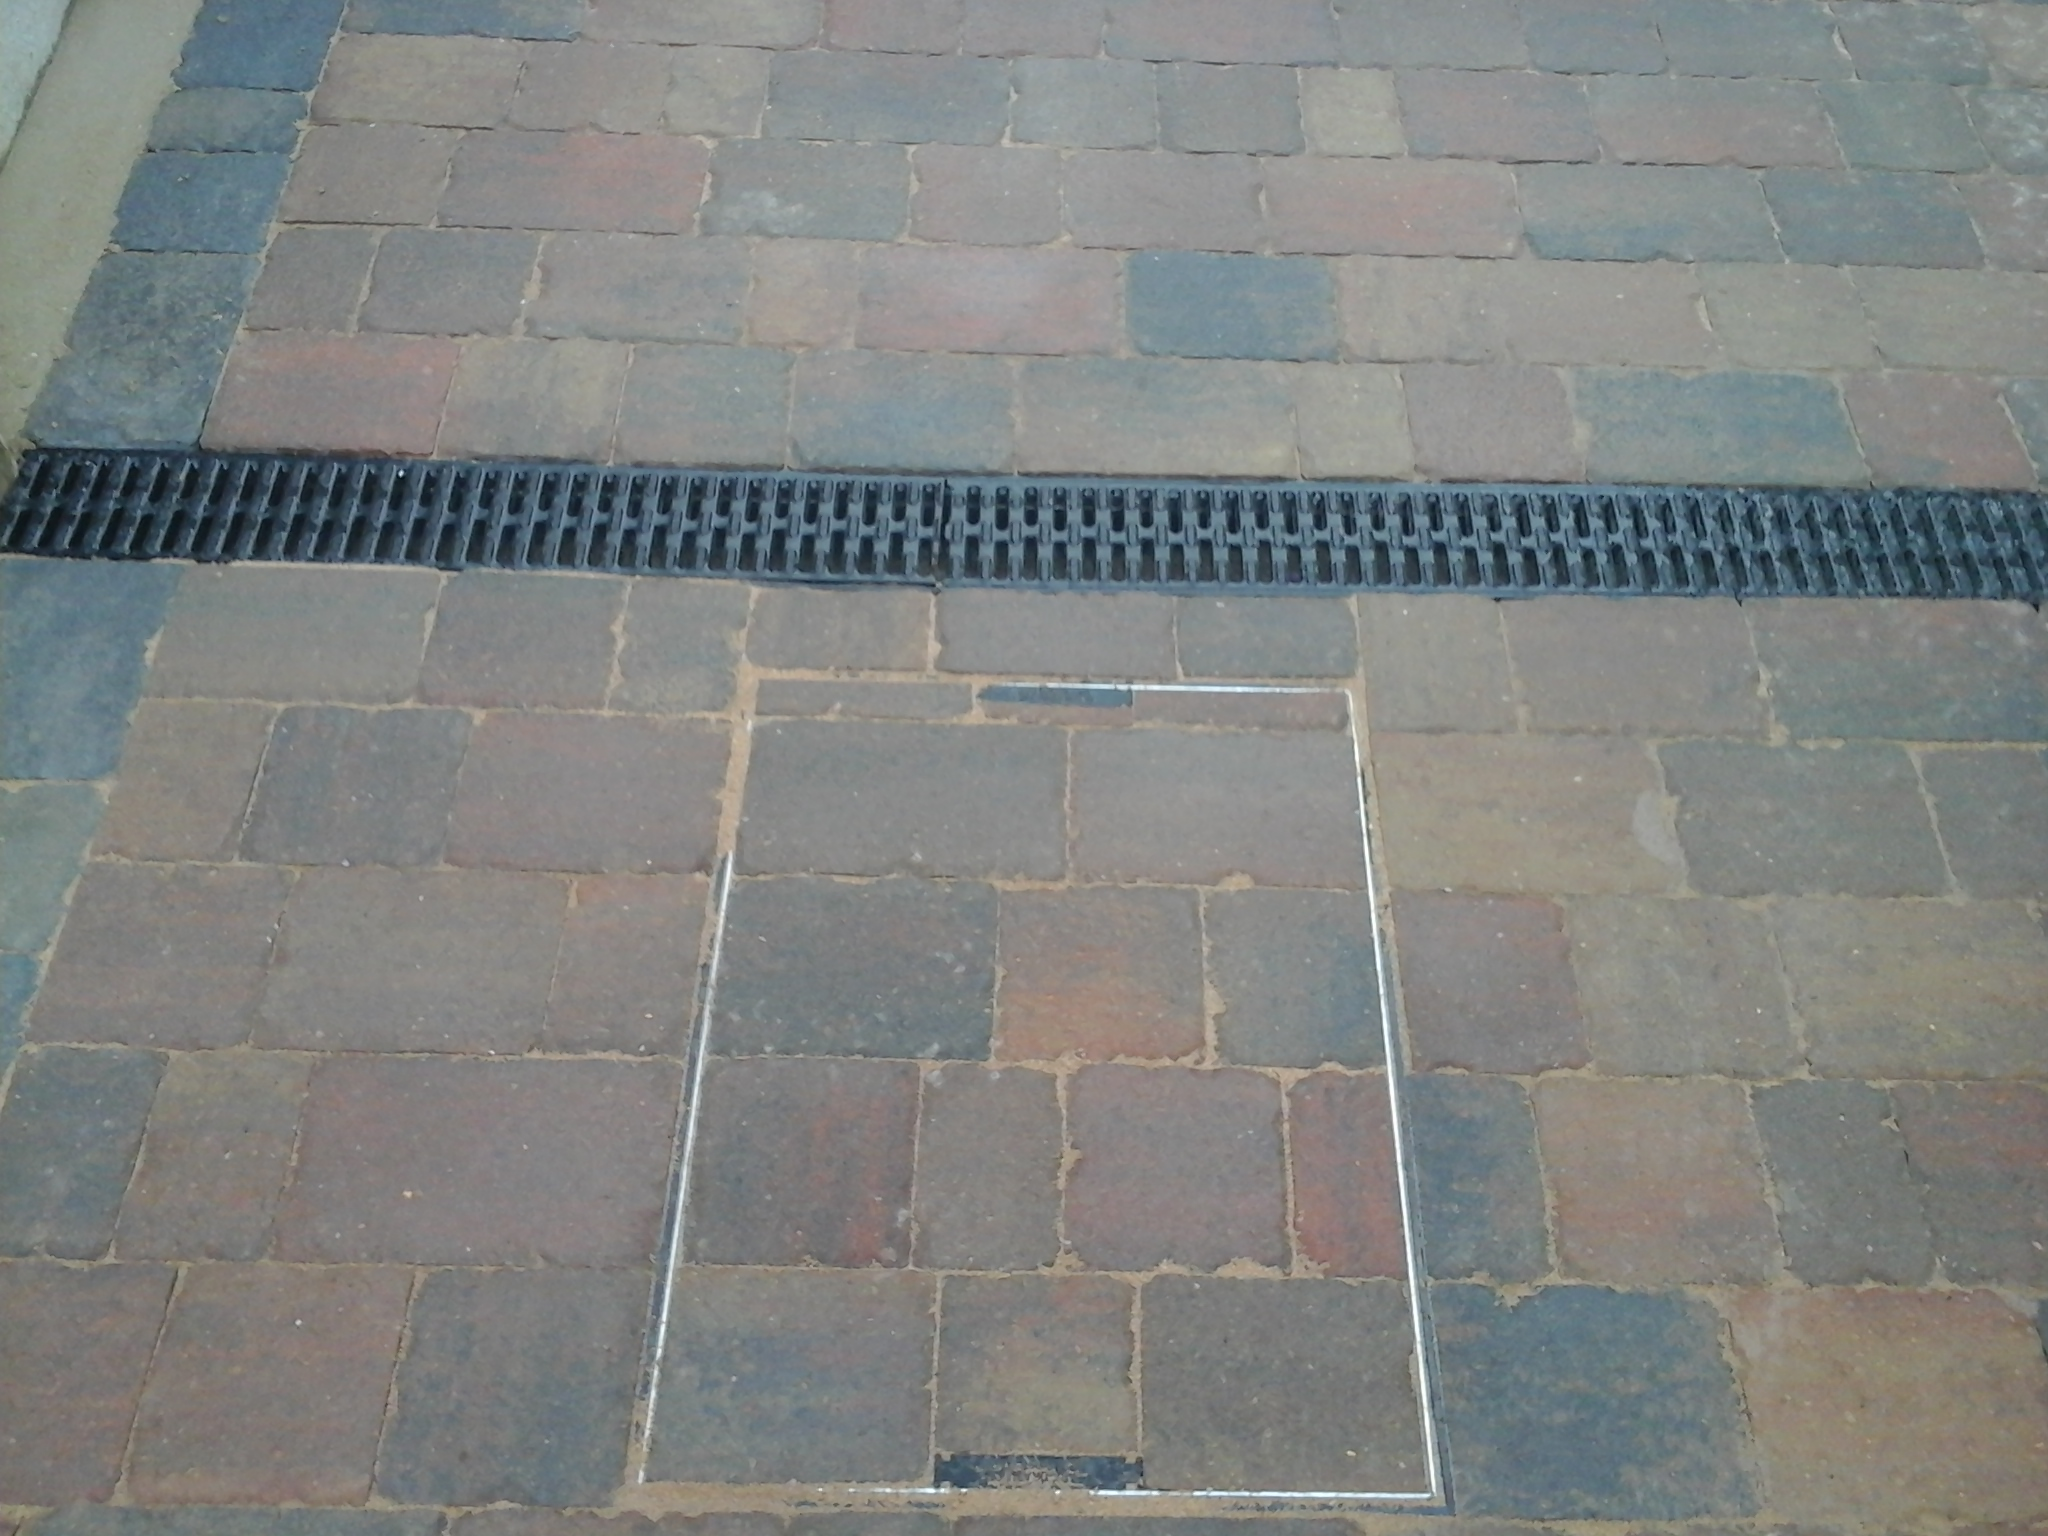 Recessed manhole covers